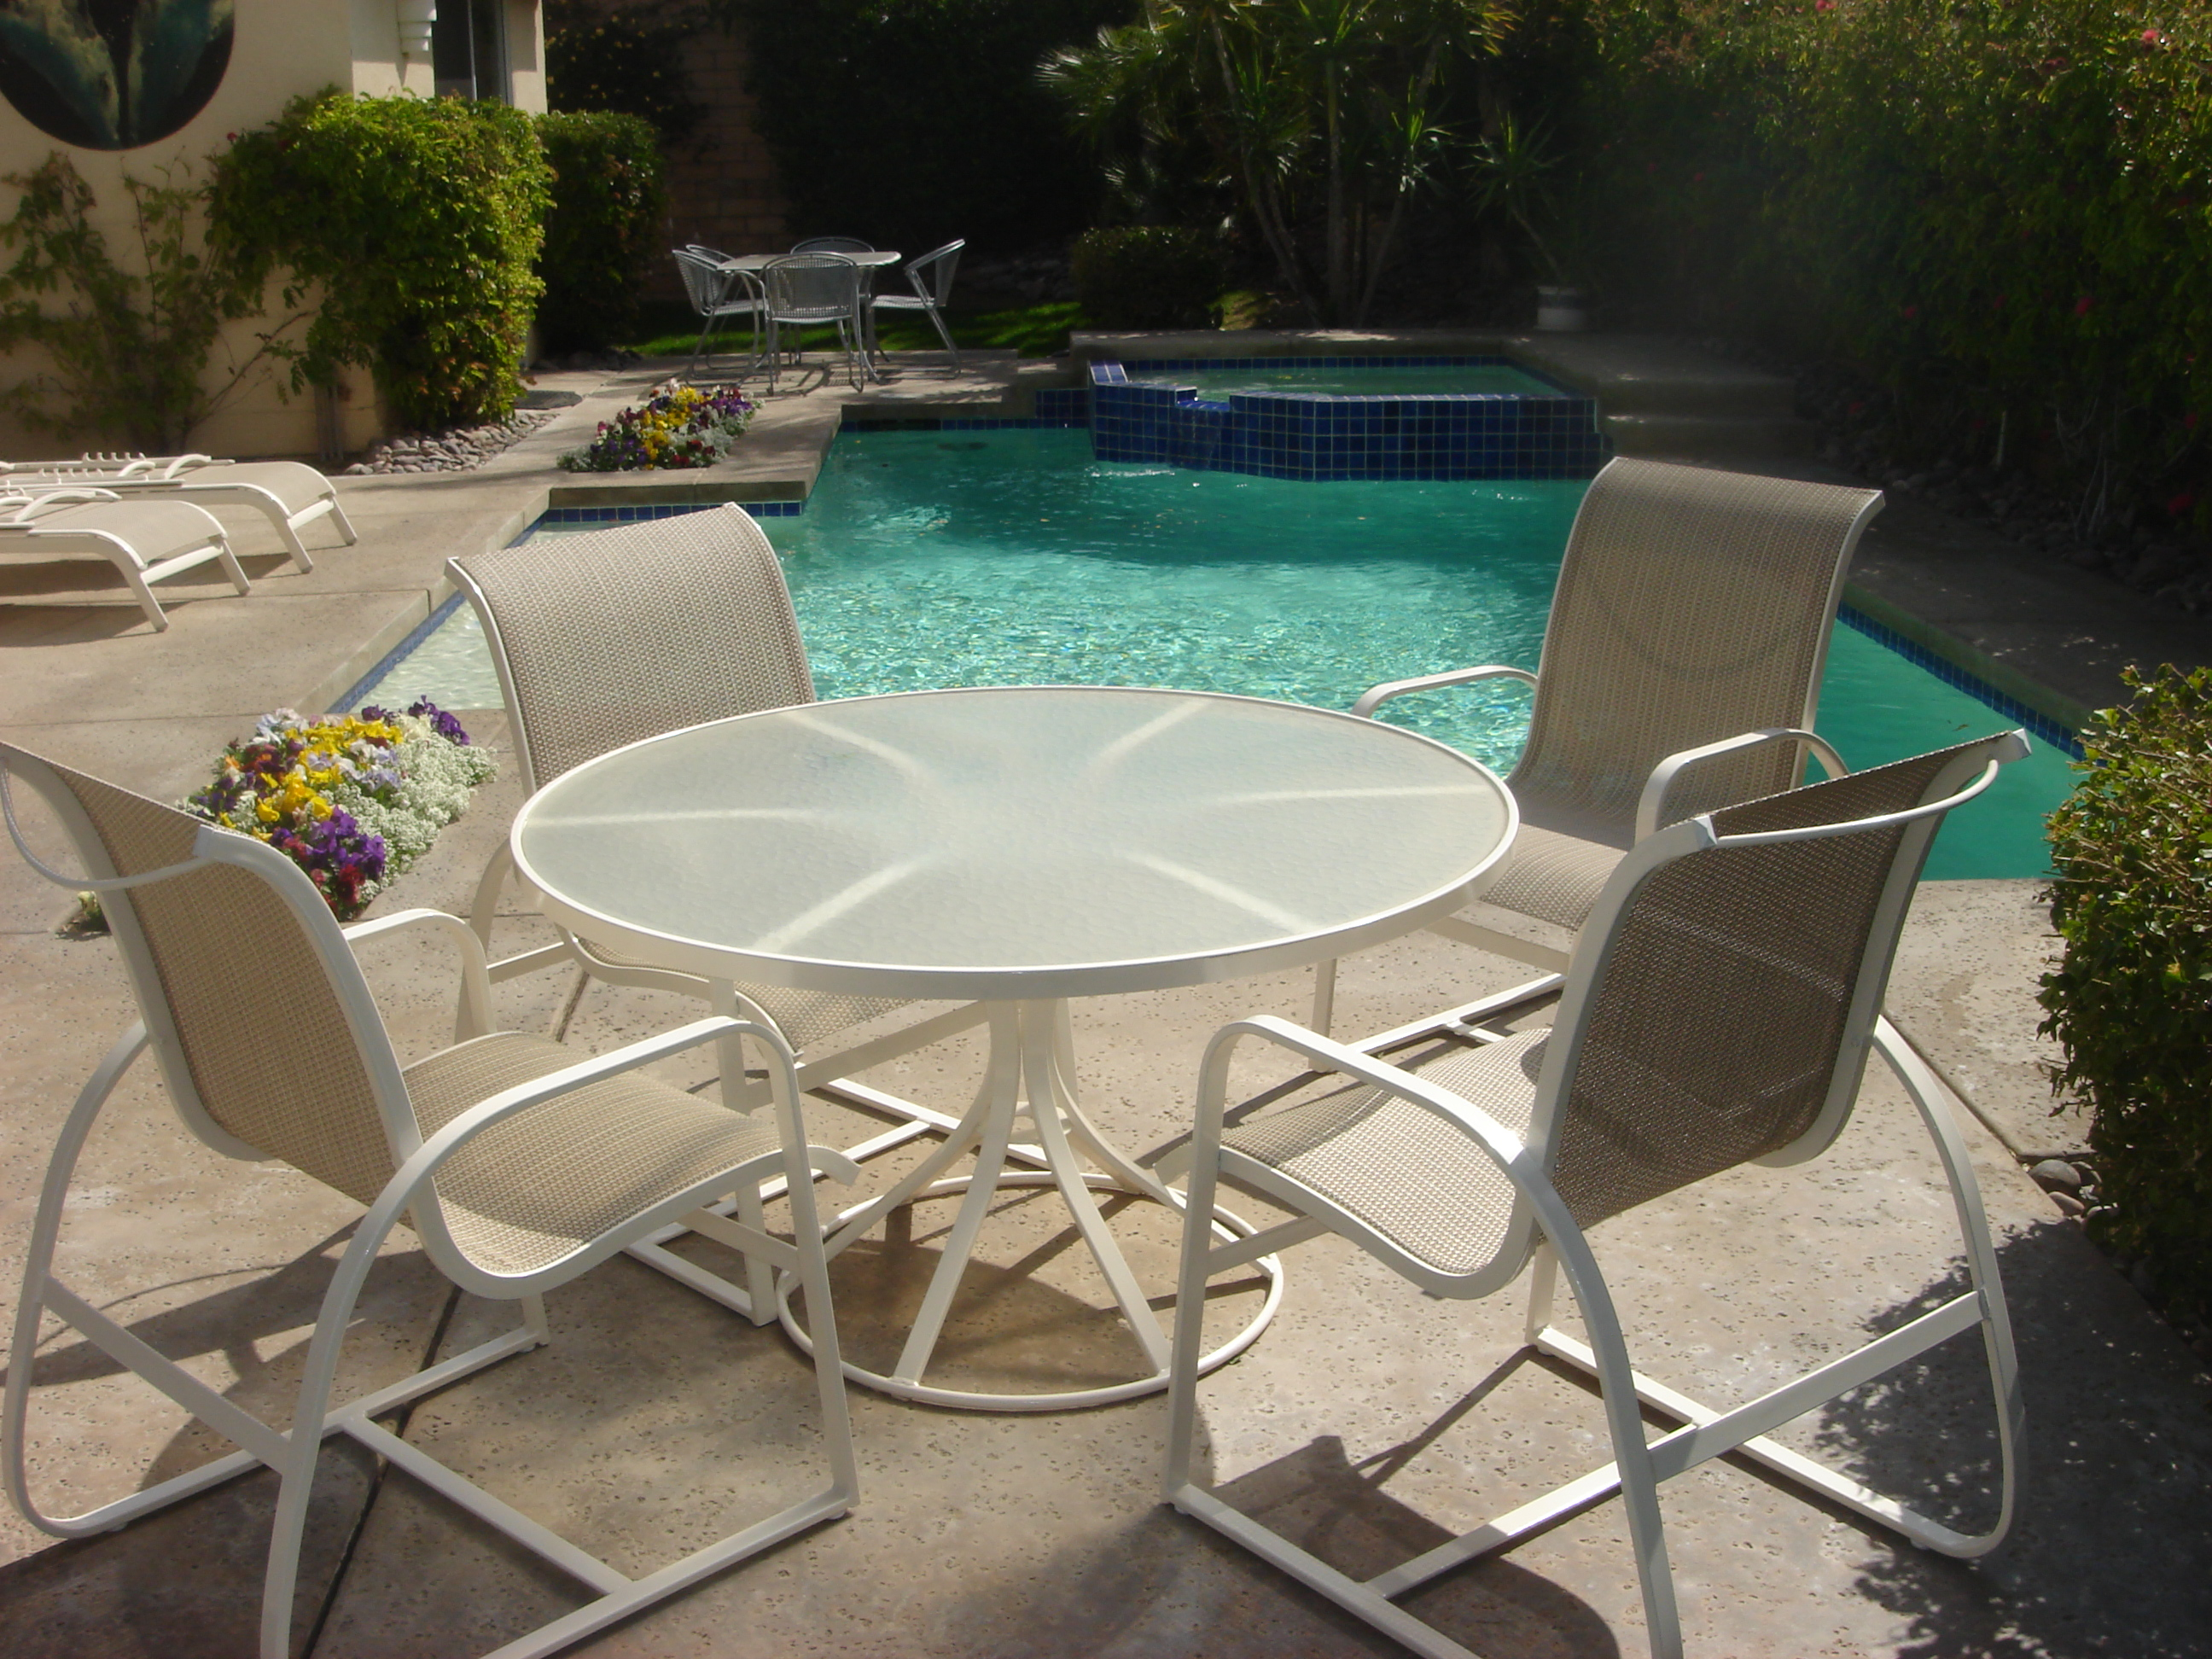 sling chair repair palm springs palm desert indian wells la